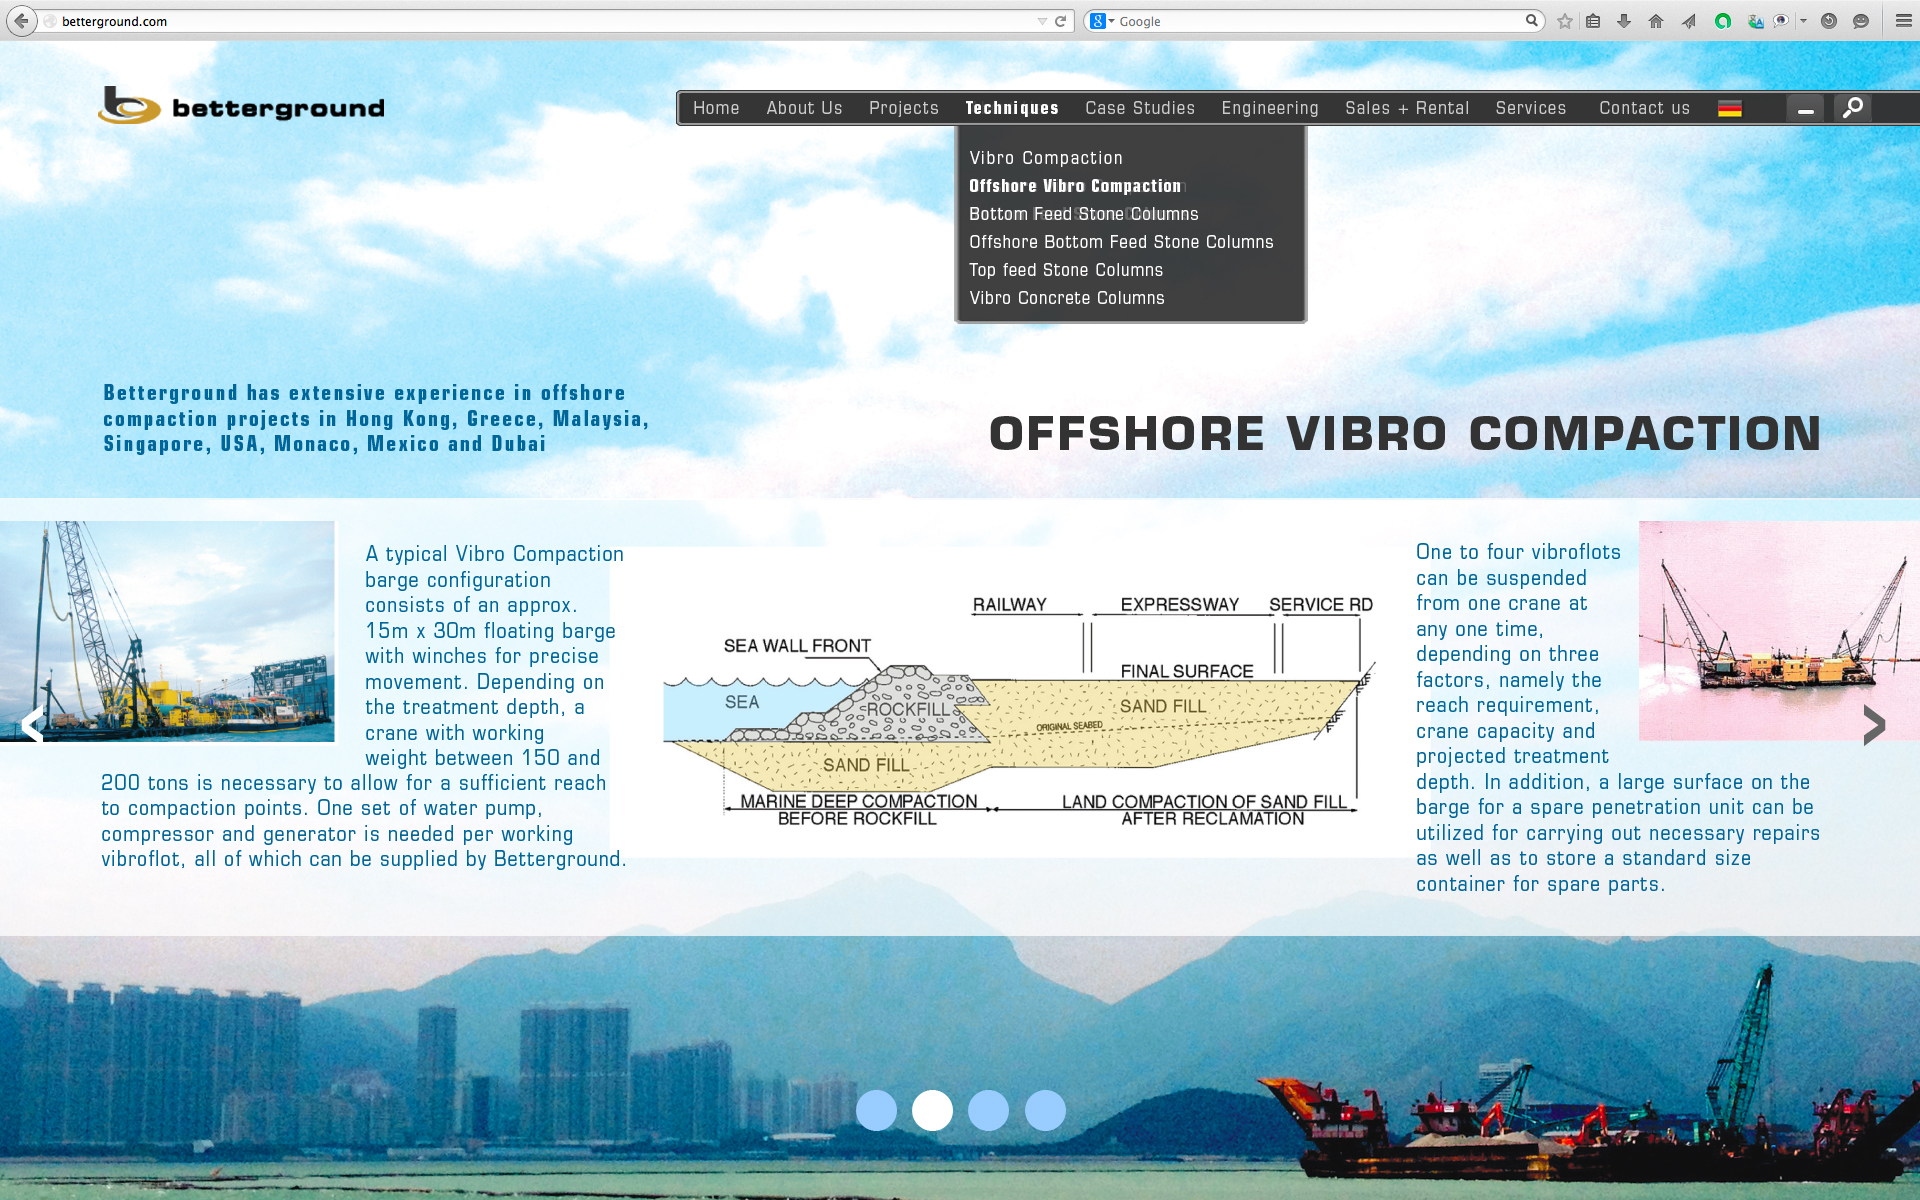 Offshore Vibro Compaction 2